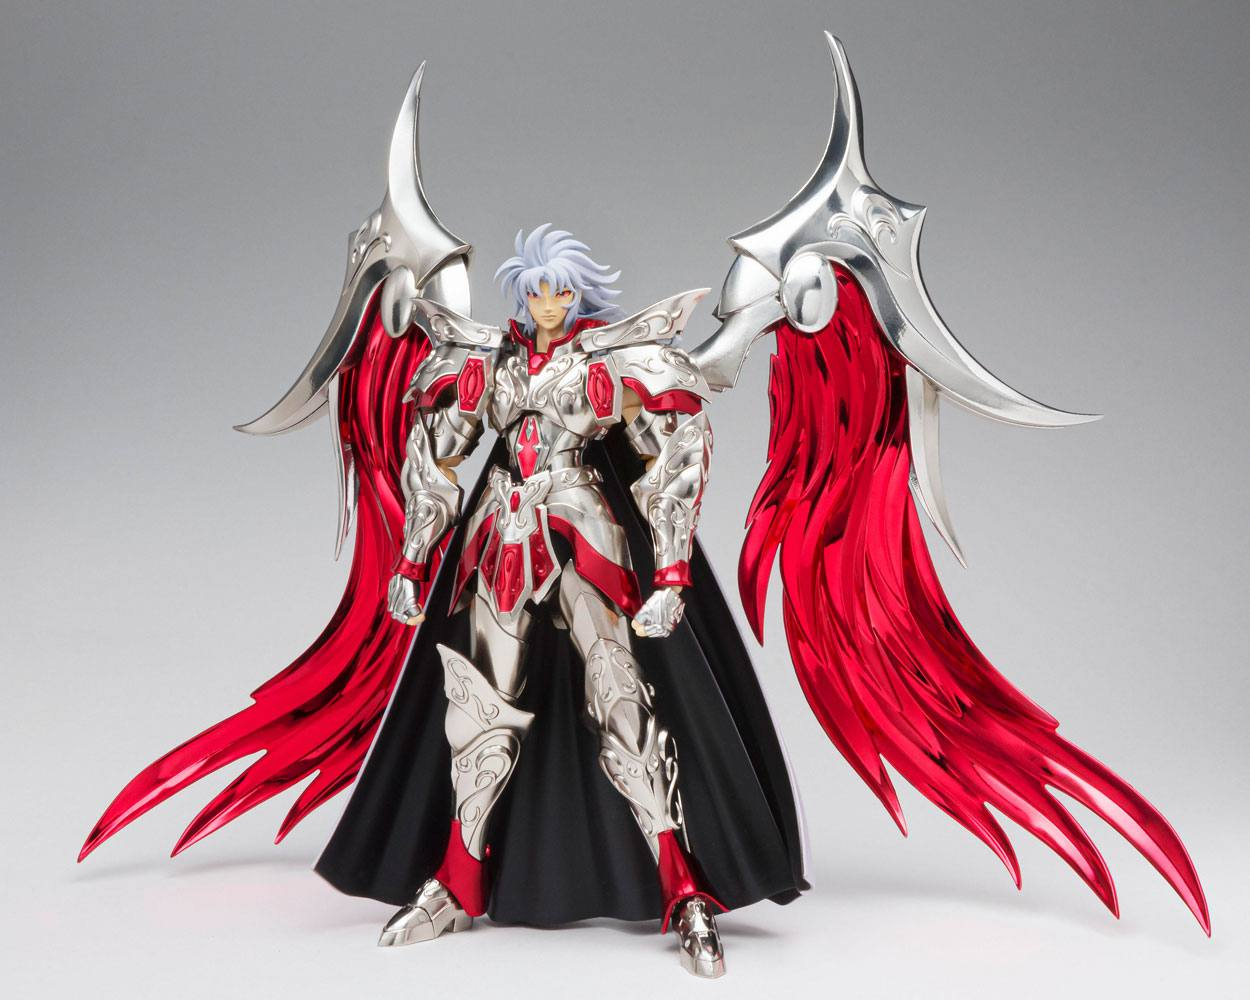 Saint Seiya SCME Action Figure War God Ares 18 cm